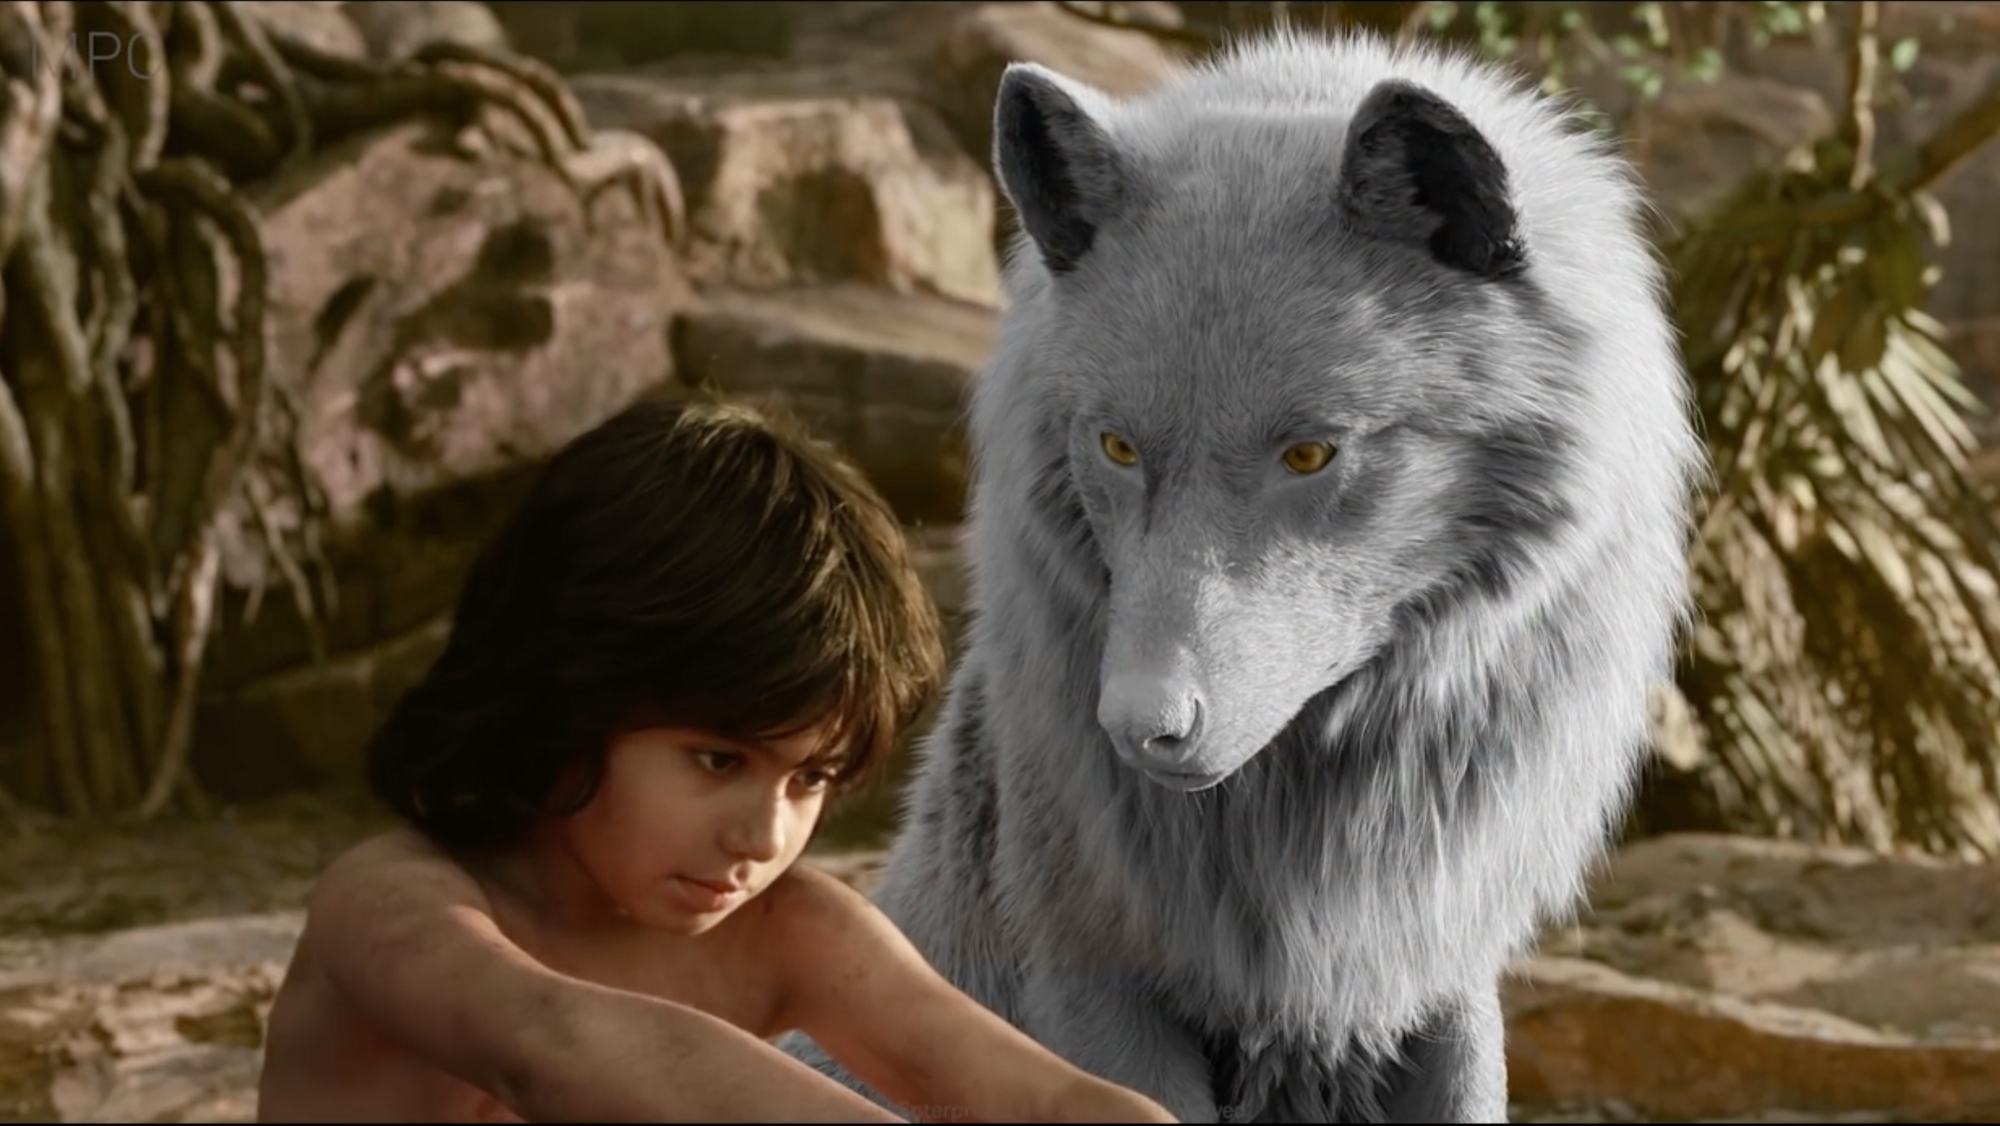 Lead VFX studio on Disney's The Jungle Book, MPC artists built a complex photo-real world